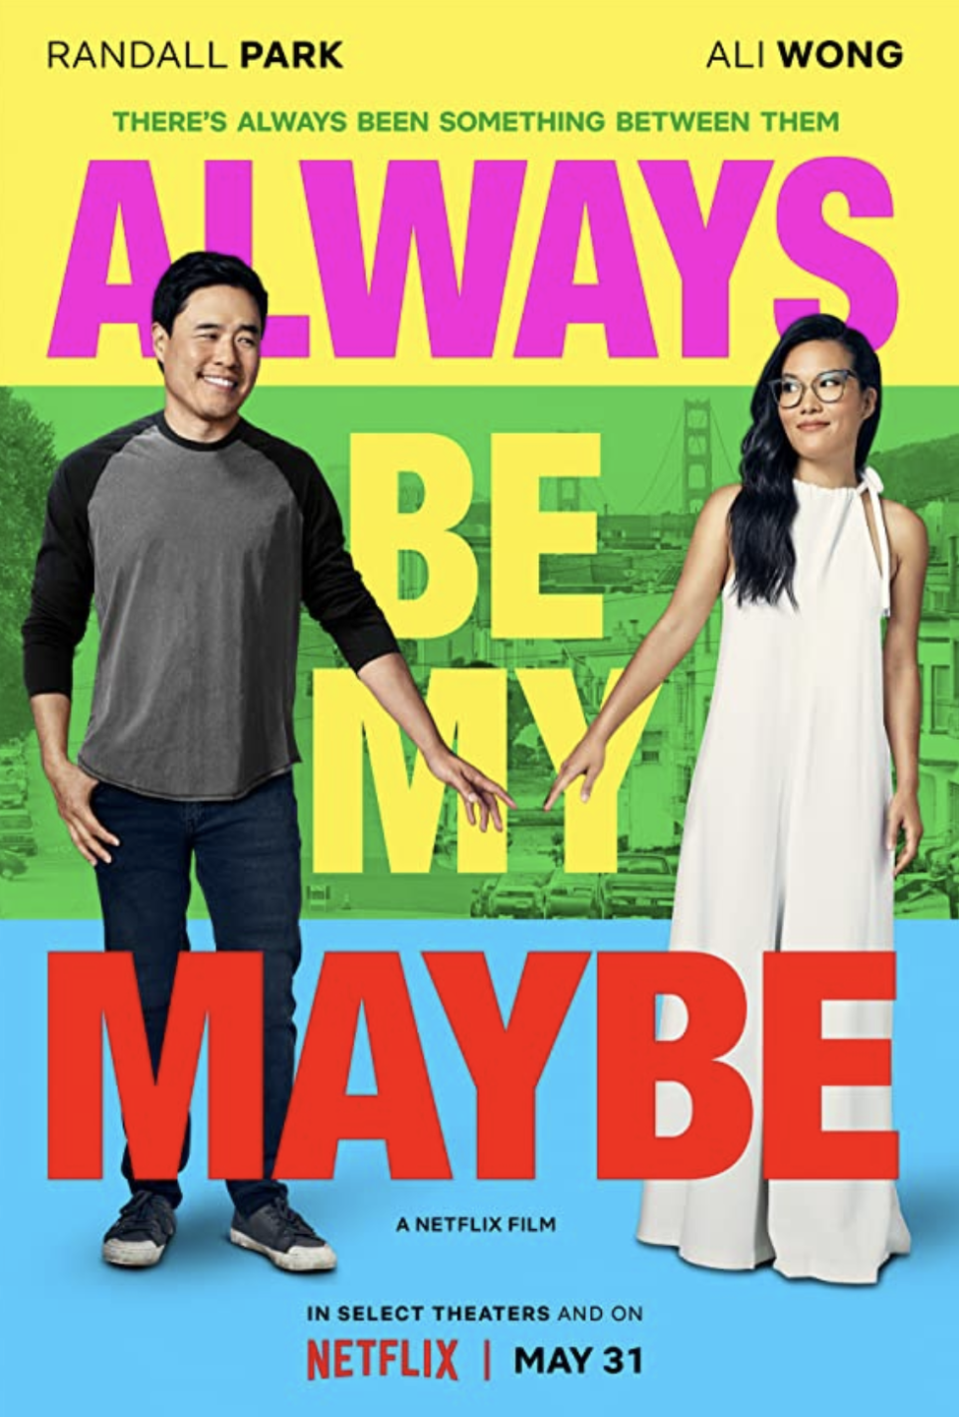 "<p>Comedian Ali Wong and <em>Fresh Off the Boat</em> star Randall Park play platonic friends, Sasha and Marcus. But when they reconnect after 15 years, they see each other in a new light.</p><p><a class=""link rapid-noclick-resp"" href=""https://www.netflix.com/search?q=always+be+&jbv=80202874"" rel=""nofollow noopener"" target=""_blank"" data-ylk=""slk:STREAM NOW"">STREAM NOW</a></p>"